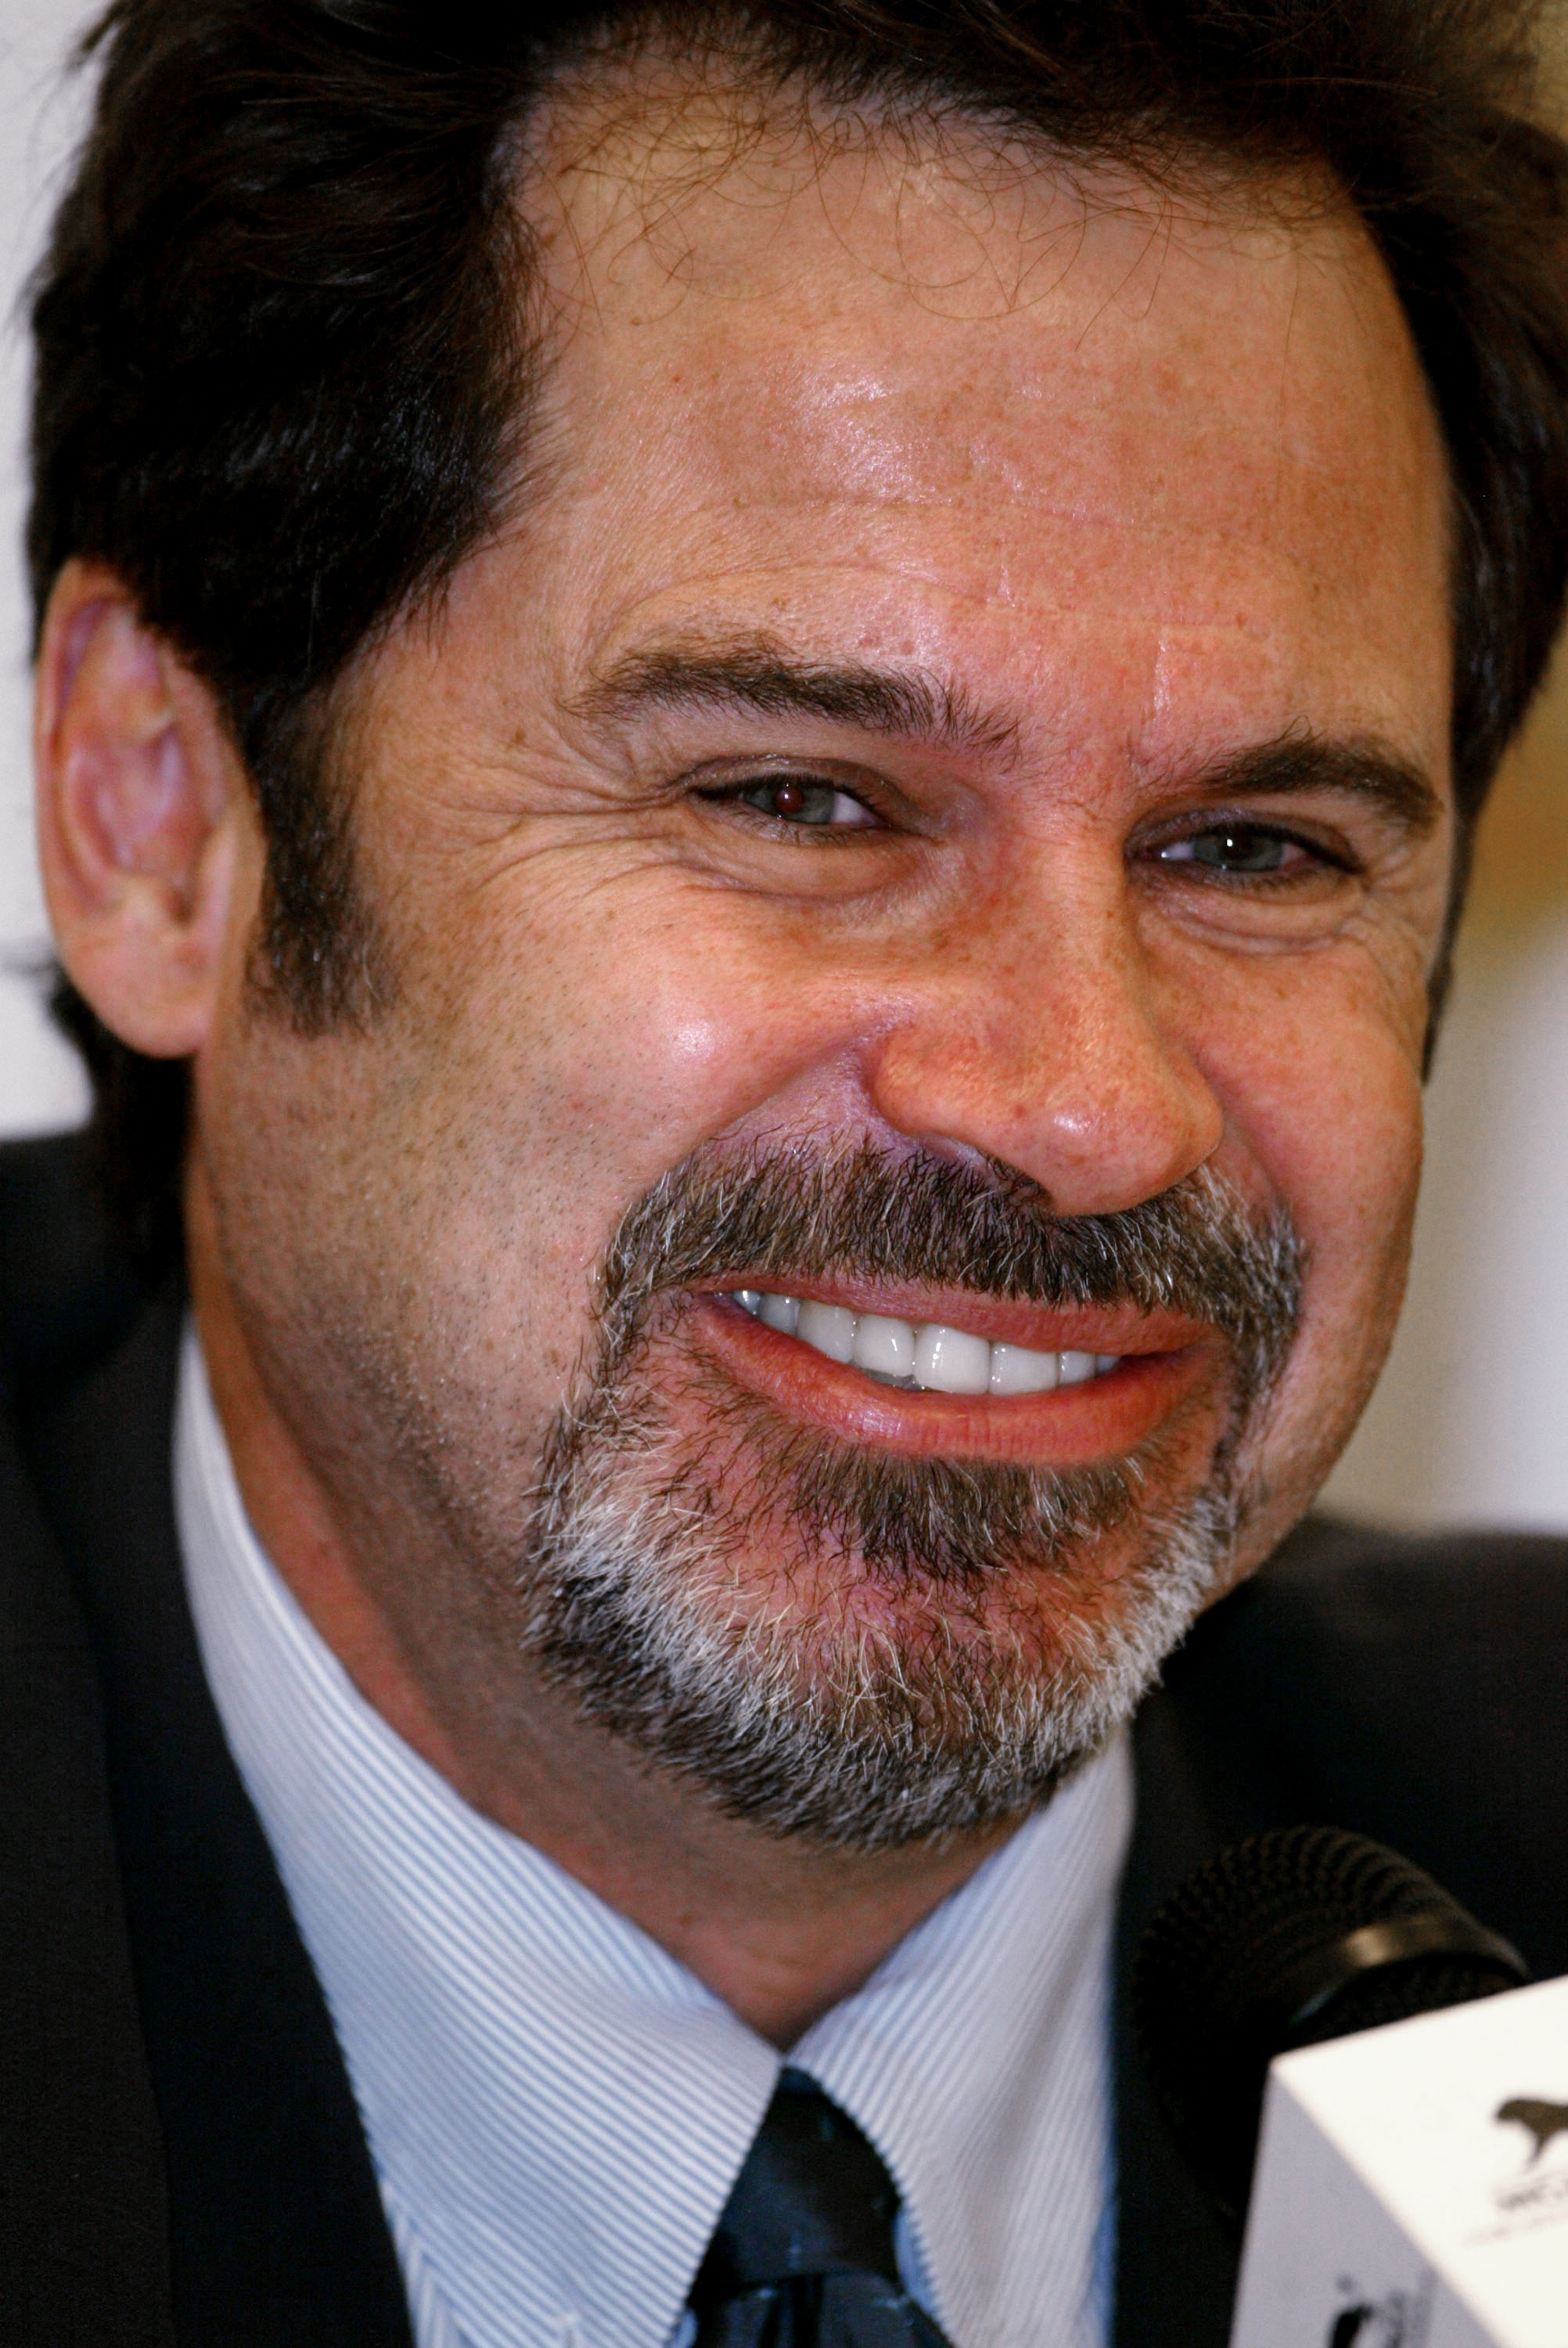 LAS VEGAS - OCTOBER 4:  Comedian Dennis Miller attends the press conference for the Andre Agassi Foundation's 8th Annual Grand Slam for Children benefit concert at the MGM Grand Garden Arena October 4, 2003 in Las Vegas, Nevada.  (Photo by Carlo Allegri/G